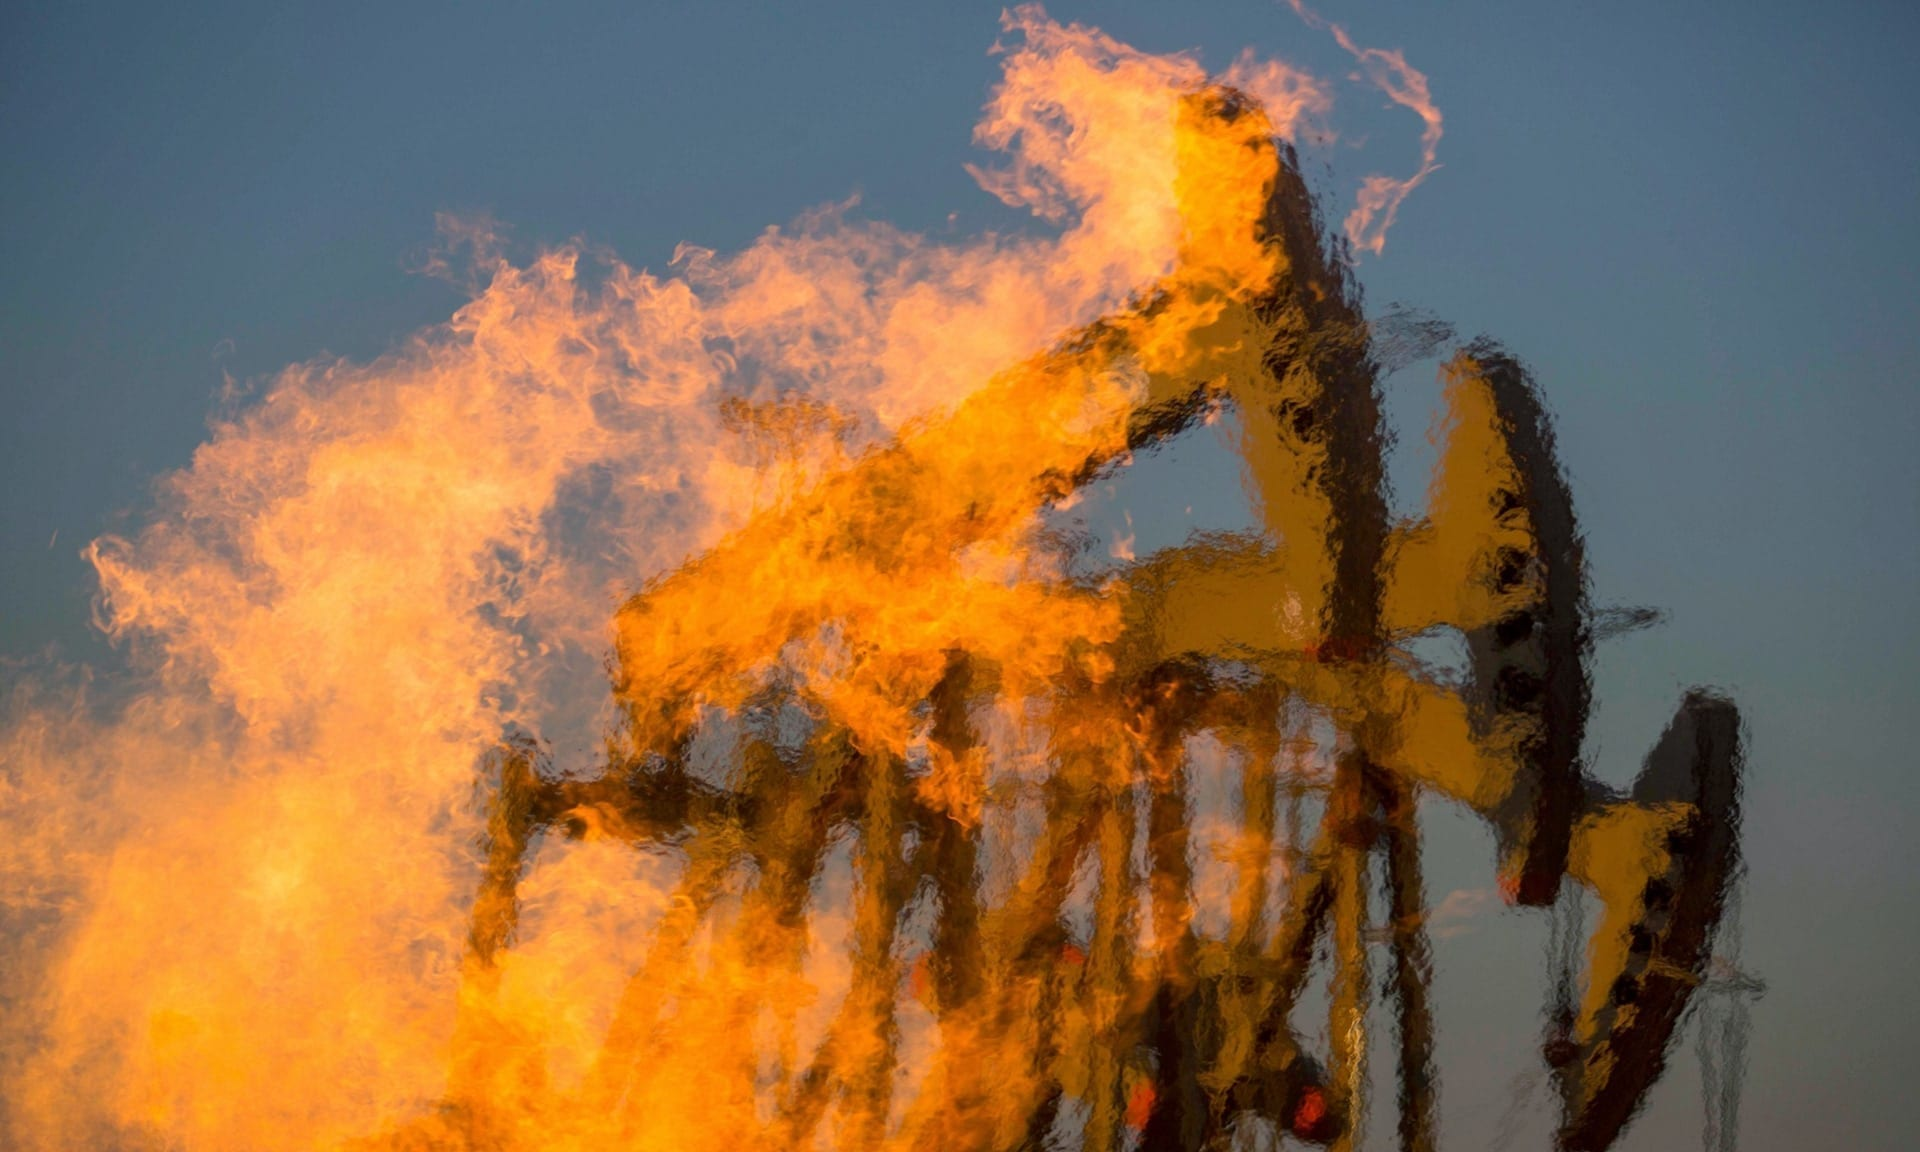 Flames in the foreground of a photo showing fracking facility